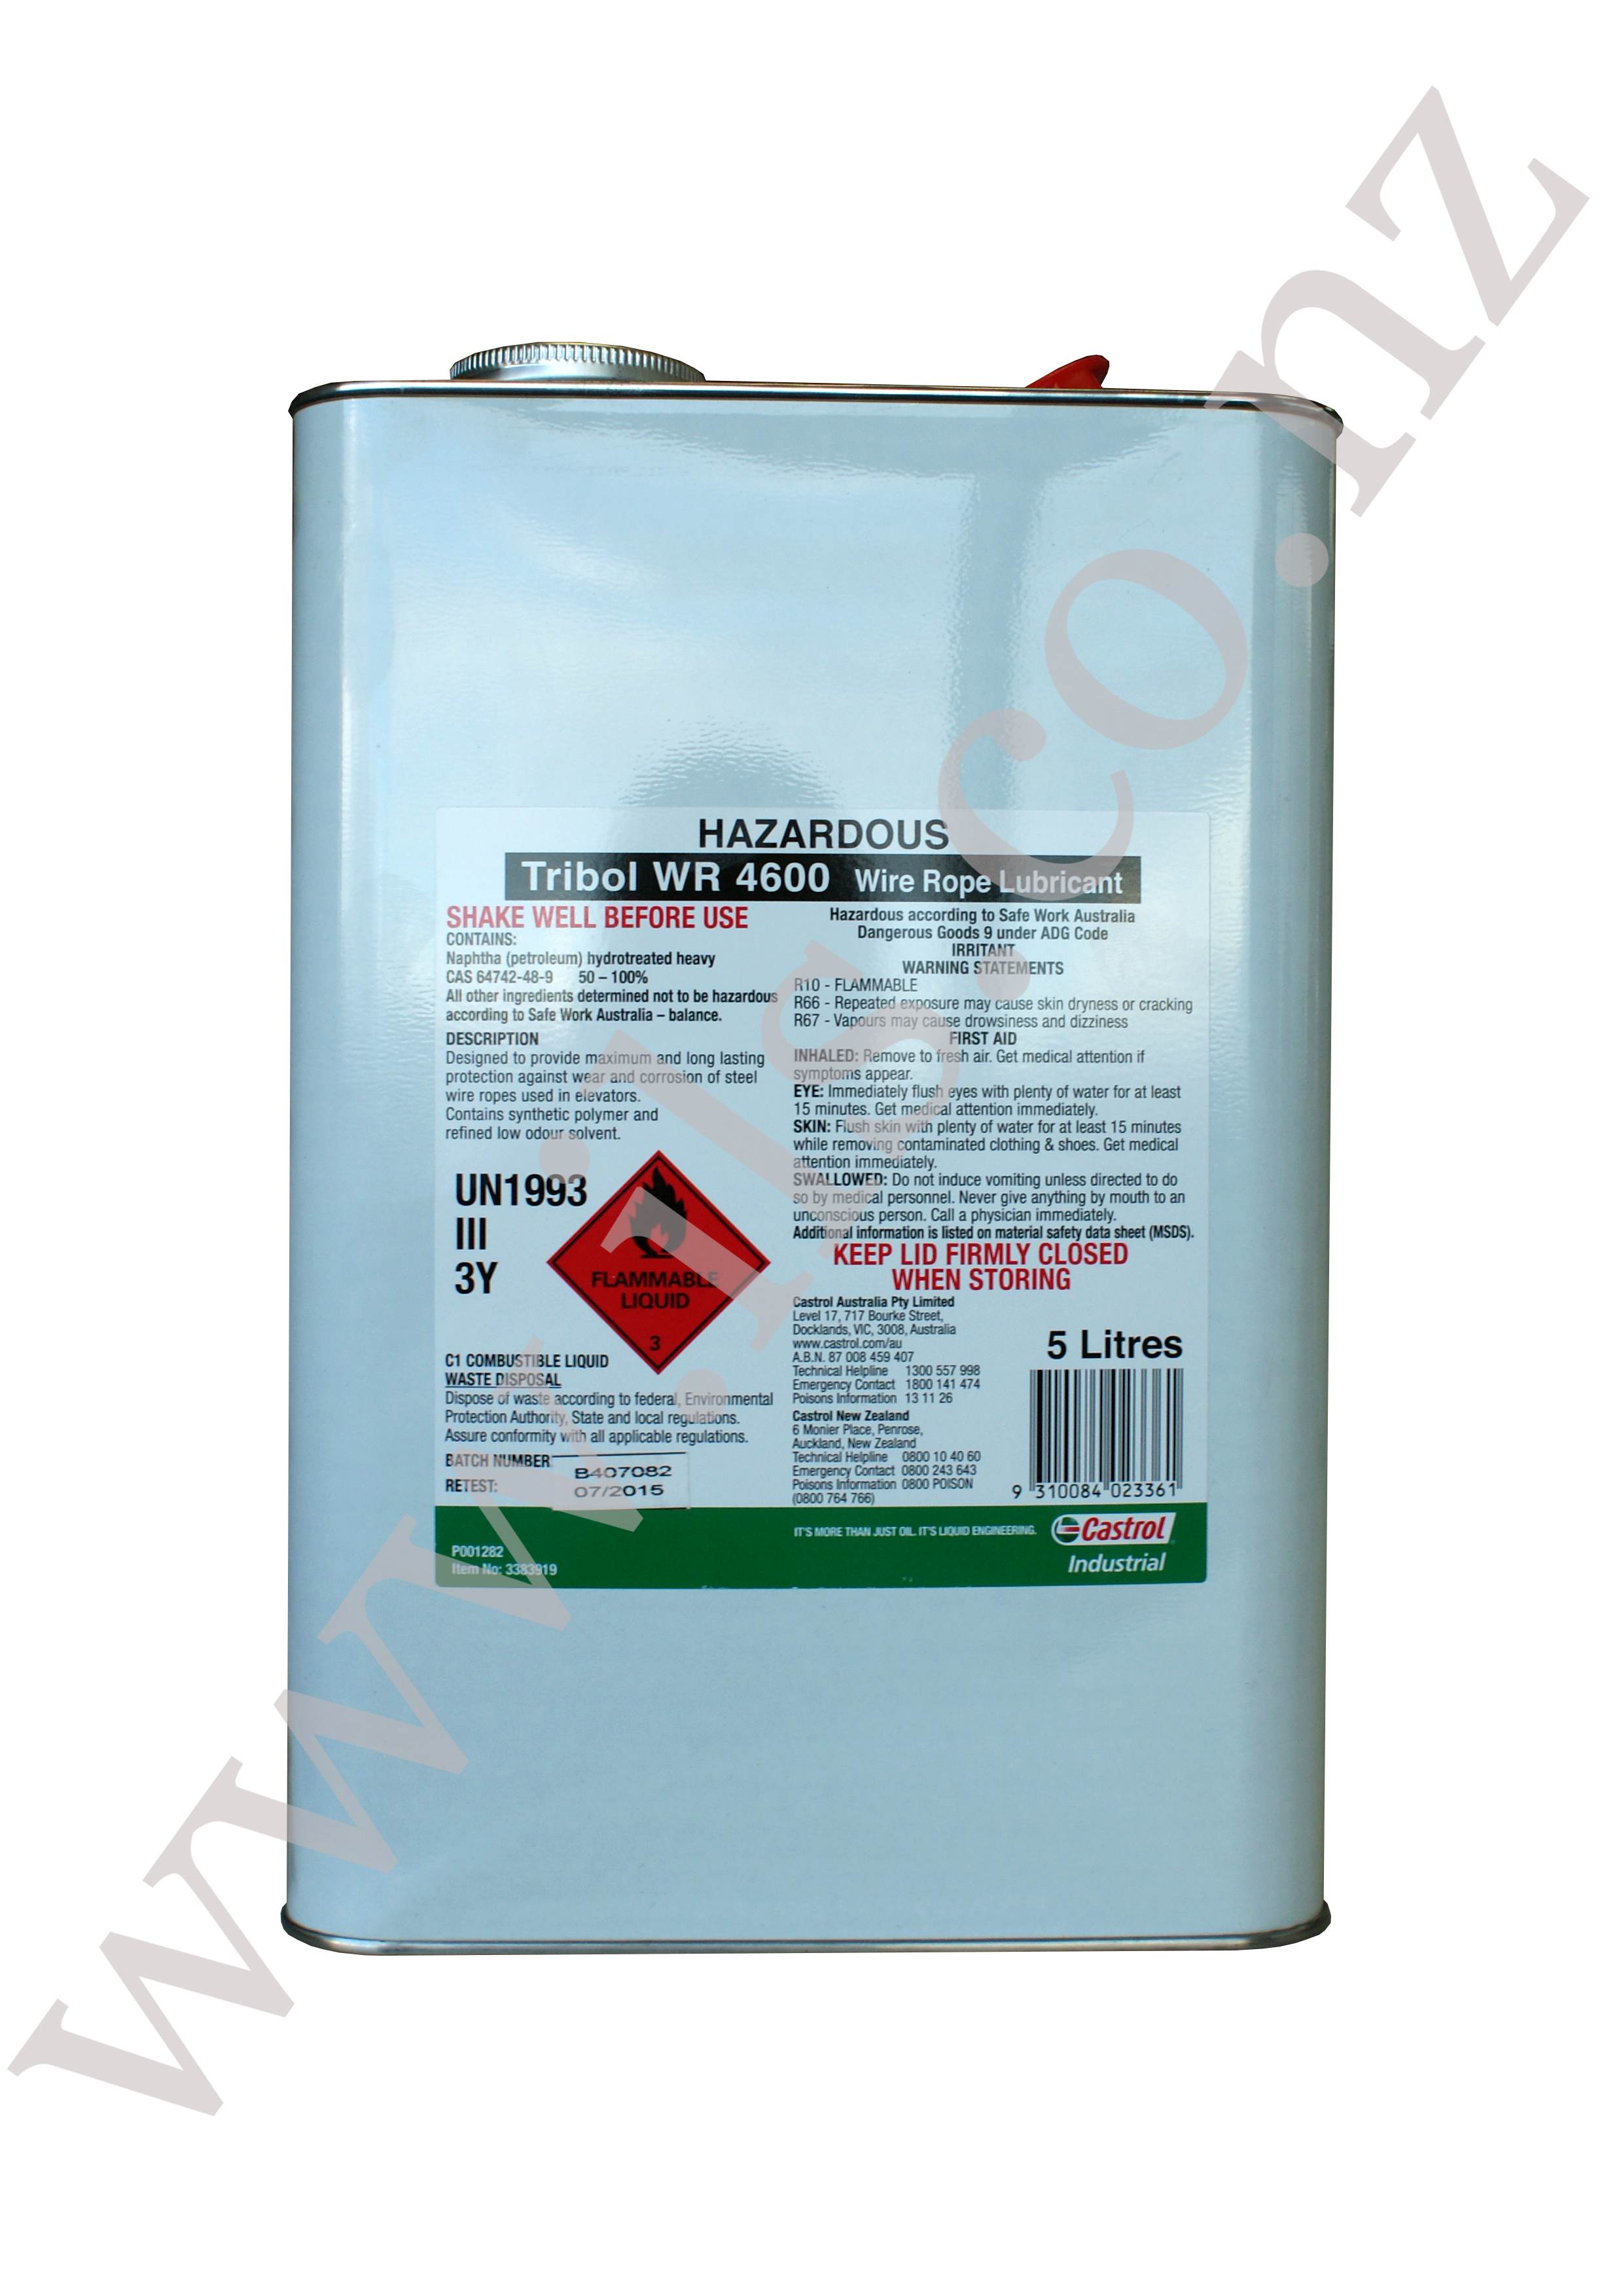 TRIBOL WR 4600 3 x 5 L - 3383919 | Industrial Lubricants & Services ...